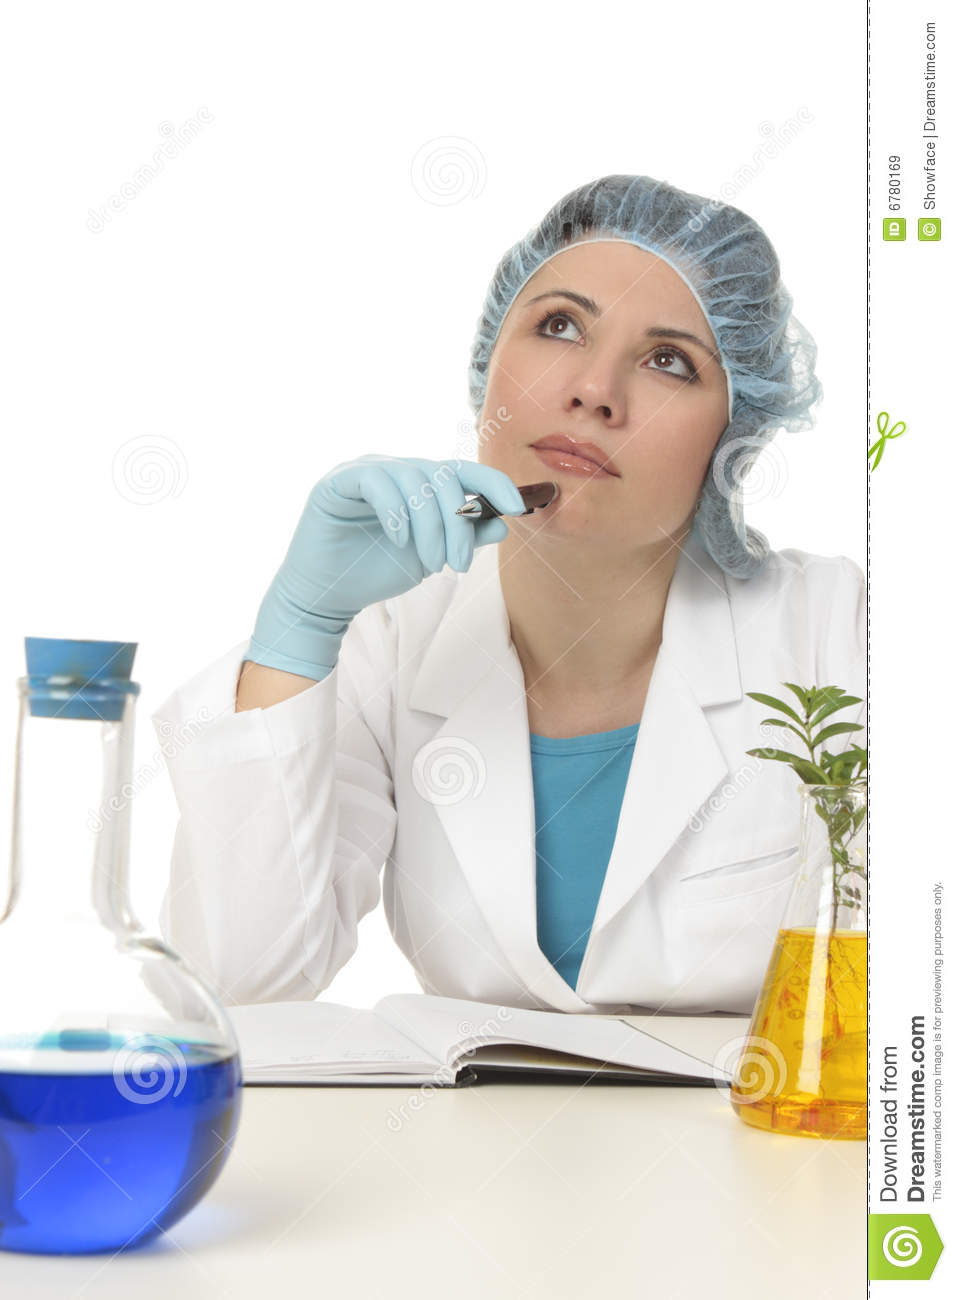 Contemplative scientist, botanist or researcher sitting in laboratory.